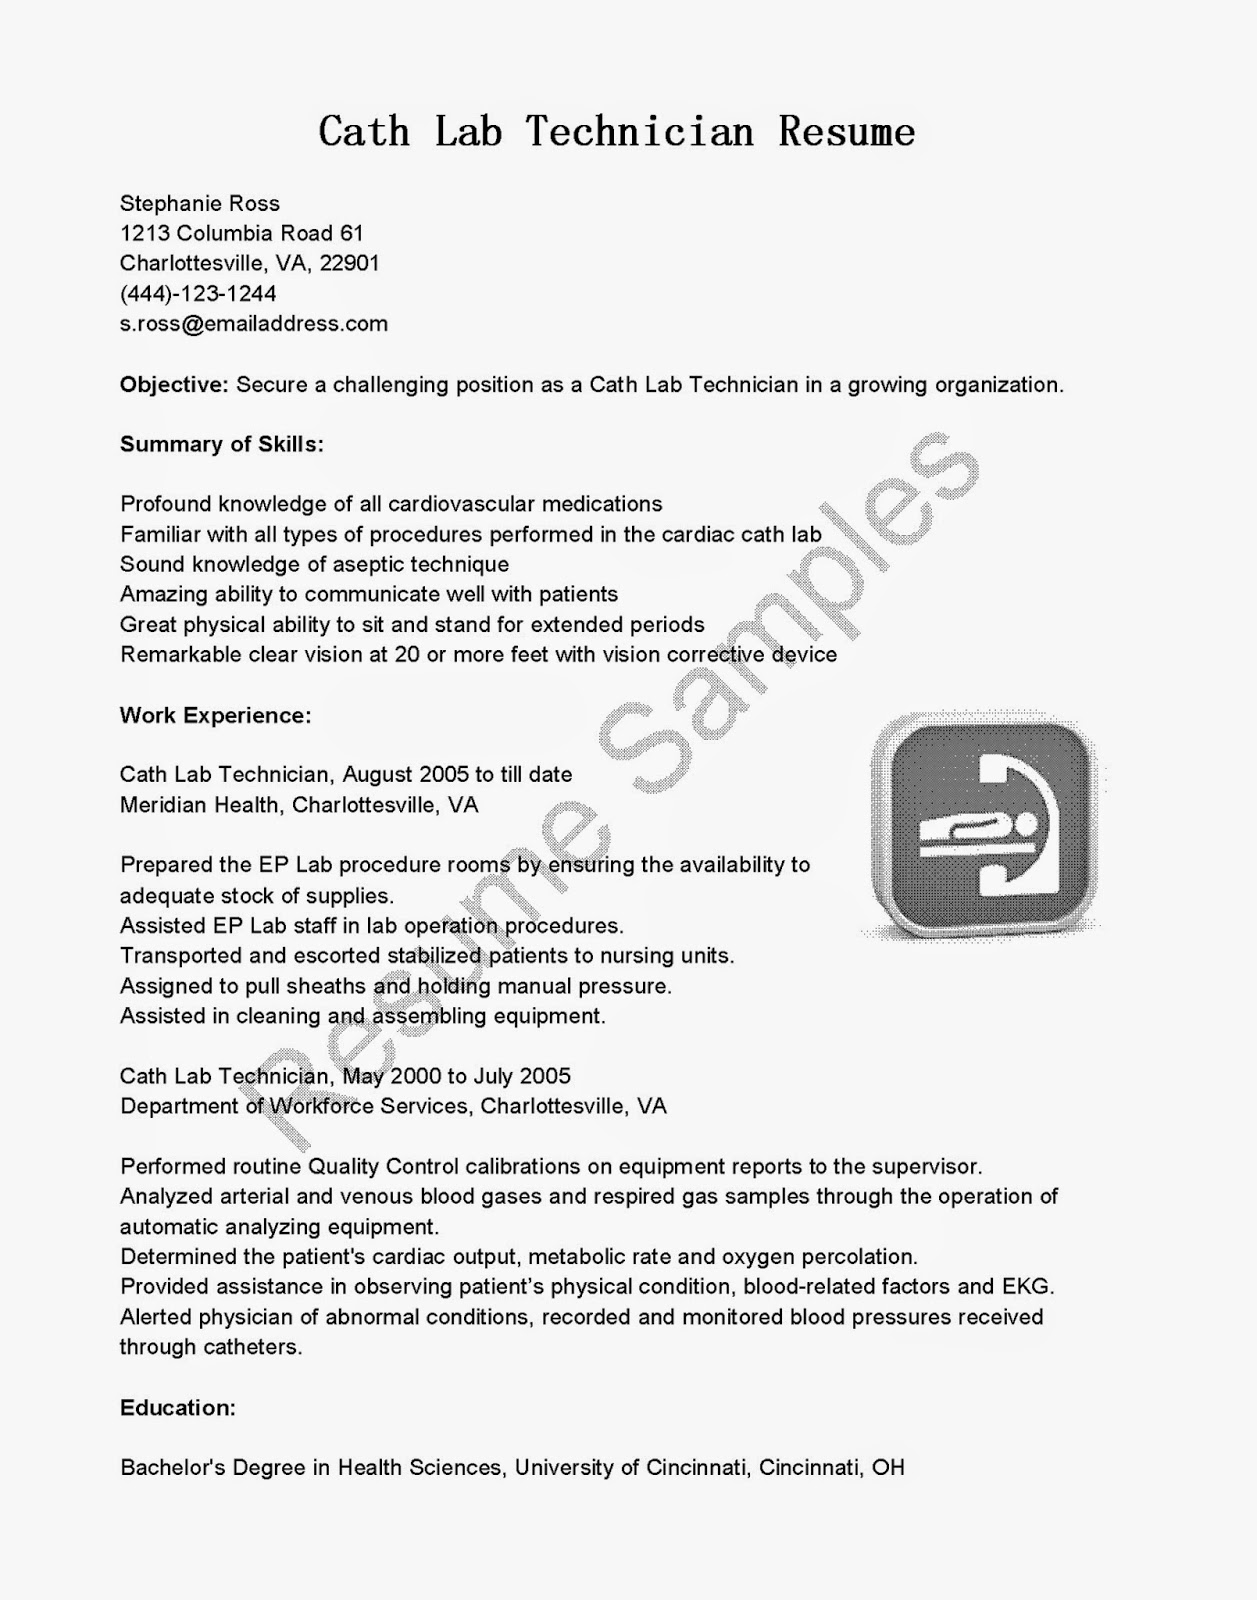 Cath Lab Tech Resume Resume Samples Cath Lab Technician Resume Sample